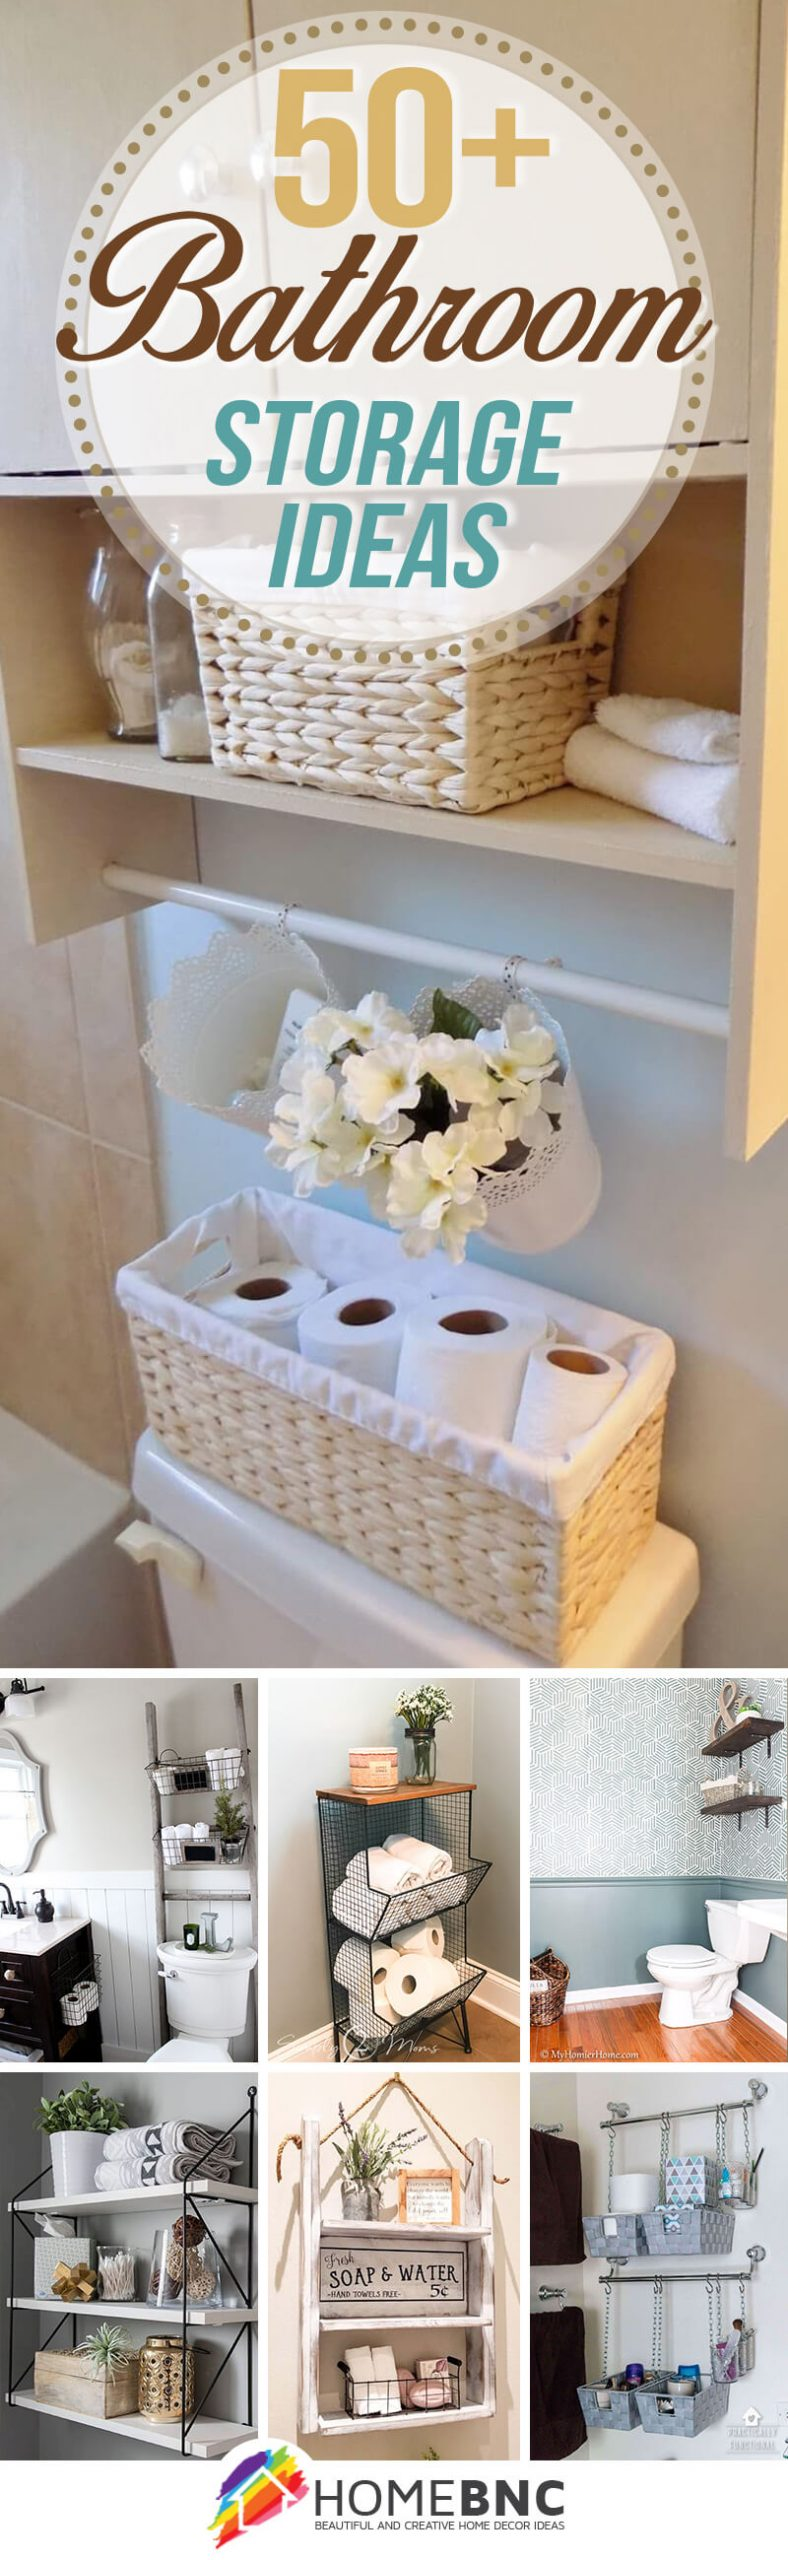 50 Best Bathroom Storage Ideas And Designs For 2021